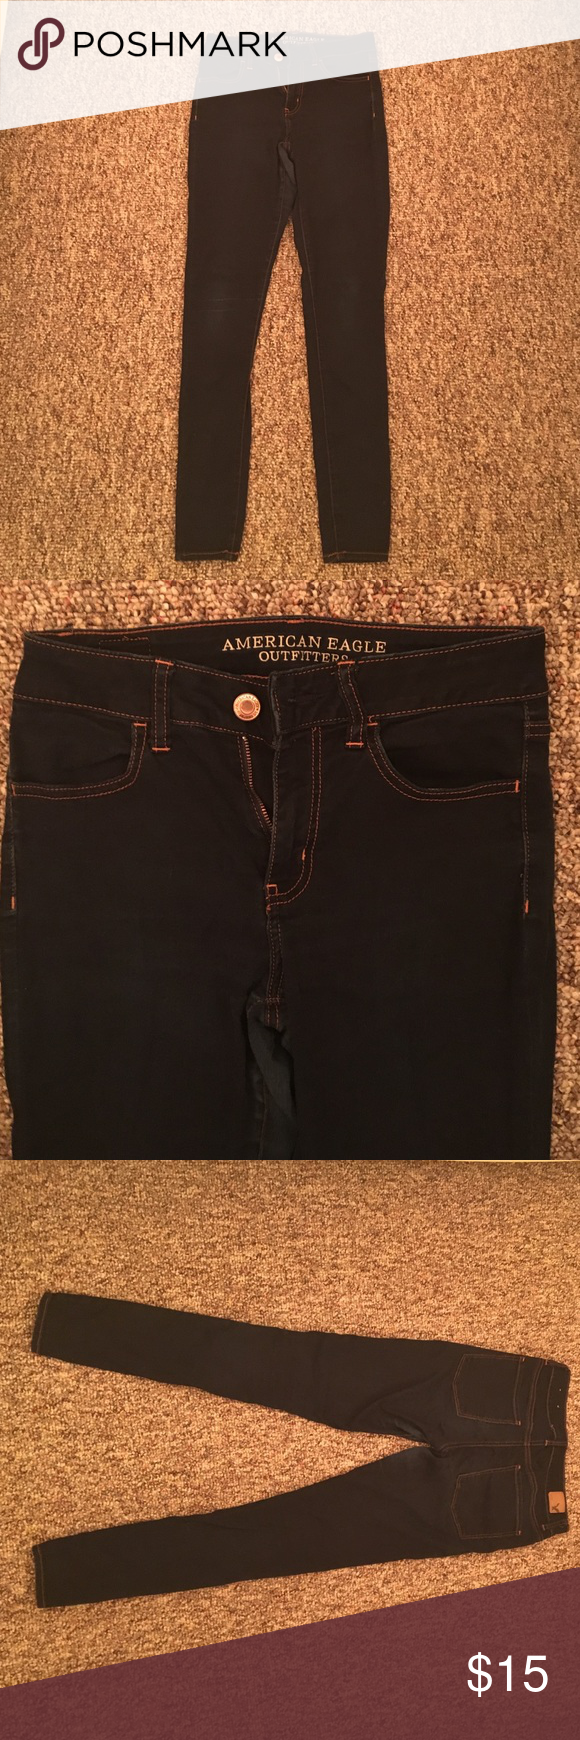 """American Eagle High Rise Jeggings American Eagle dark wash high rise jeggings. Worn but still in good condition. Small imperfection on right knee but not very noticeable. Super stretchy and comfortable! Logo even says """"super super stretch""""! American Eagle Outfitters Jeans Skinny"""